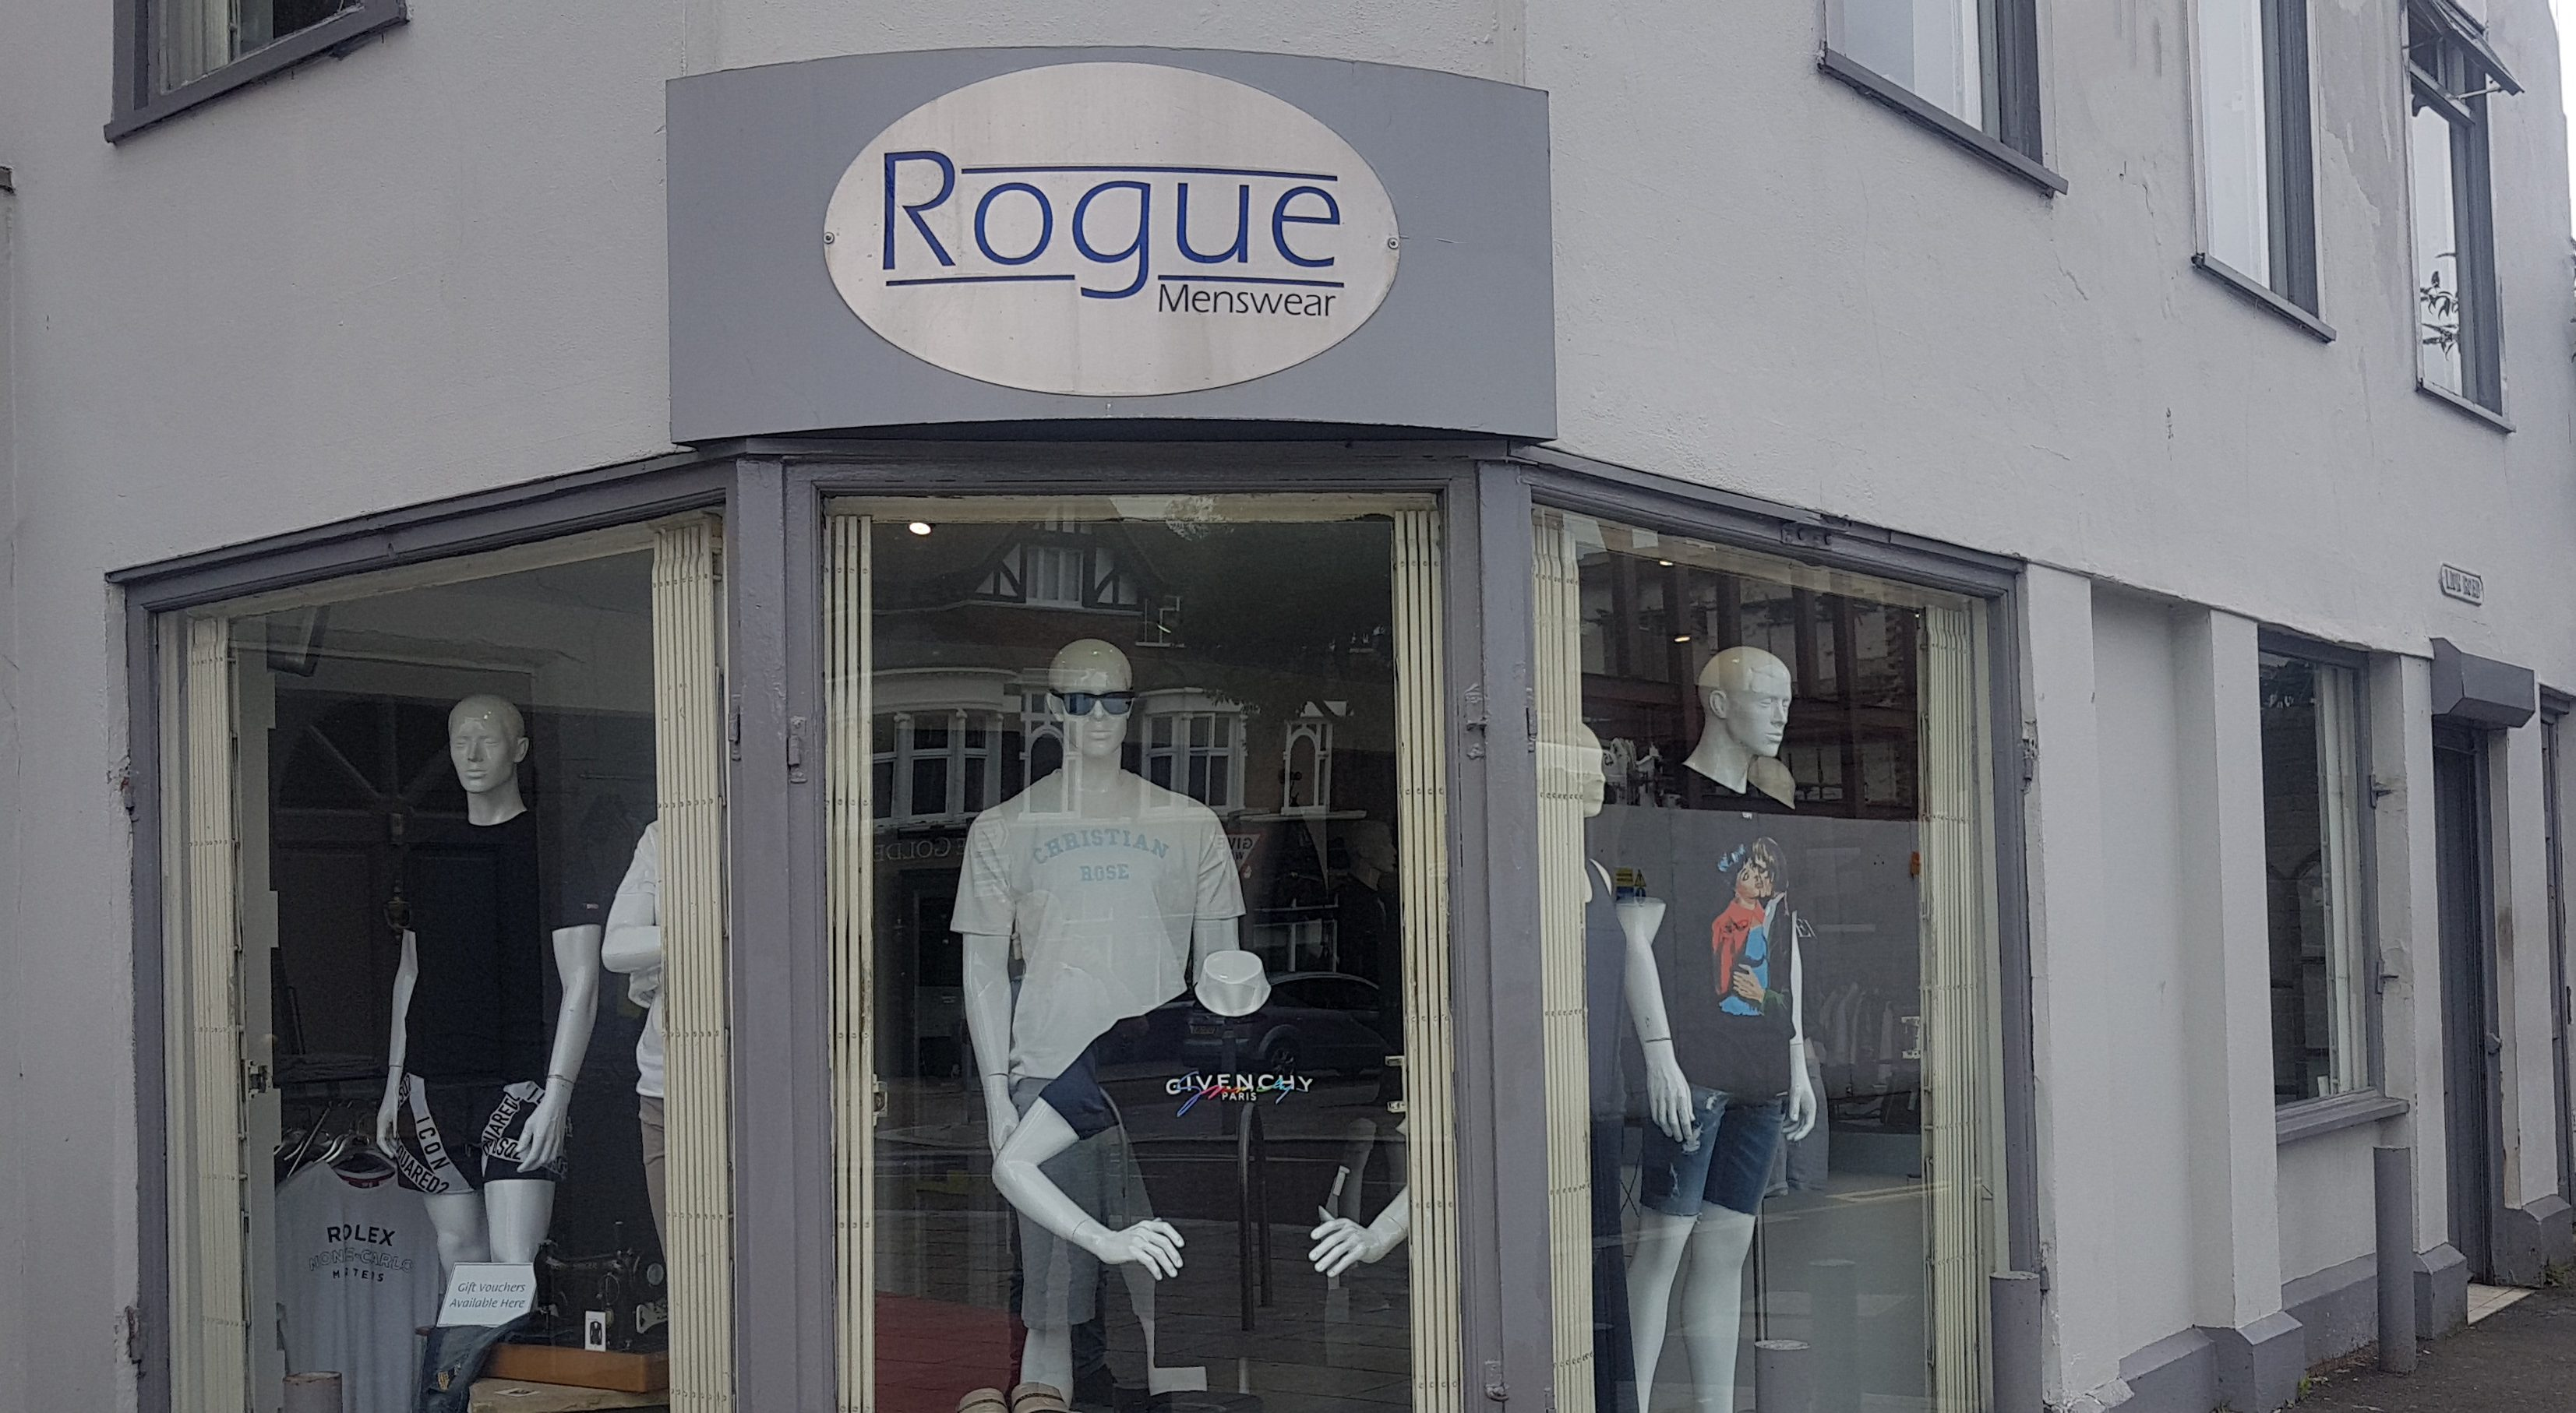 http://www.roguemenswear.co.uk/wp-content/uploads/2019/07/new-shop-e1564063224156.jpg